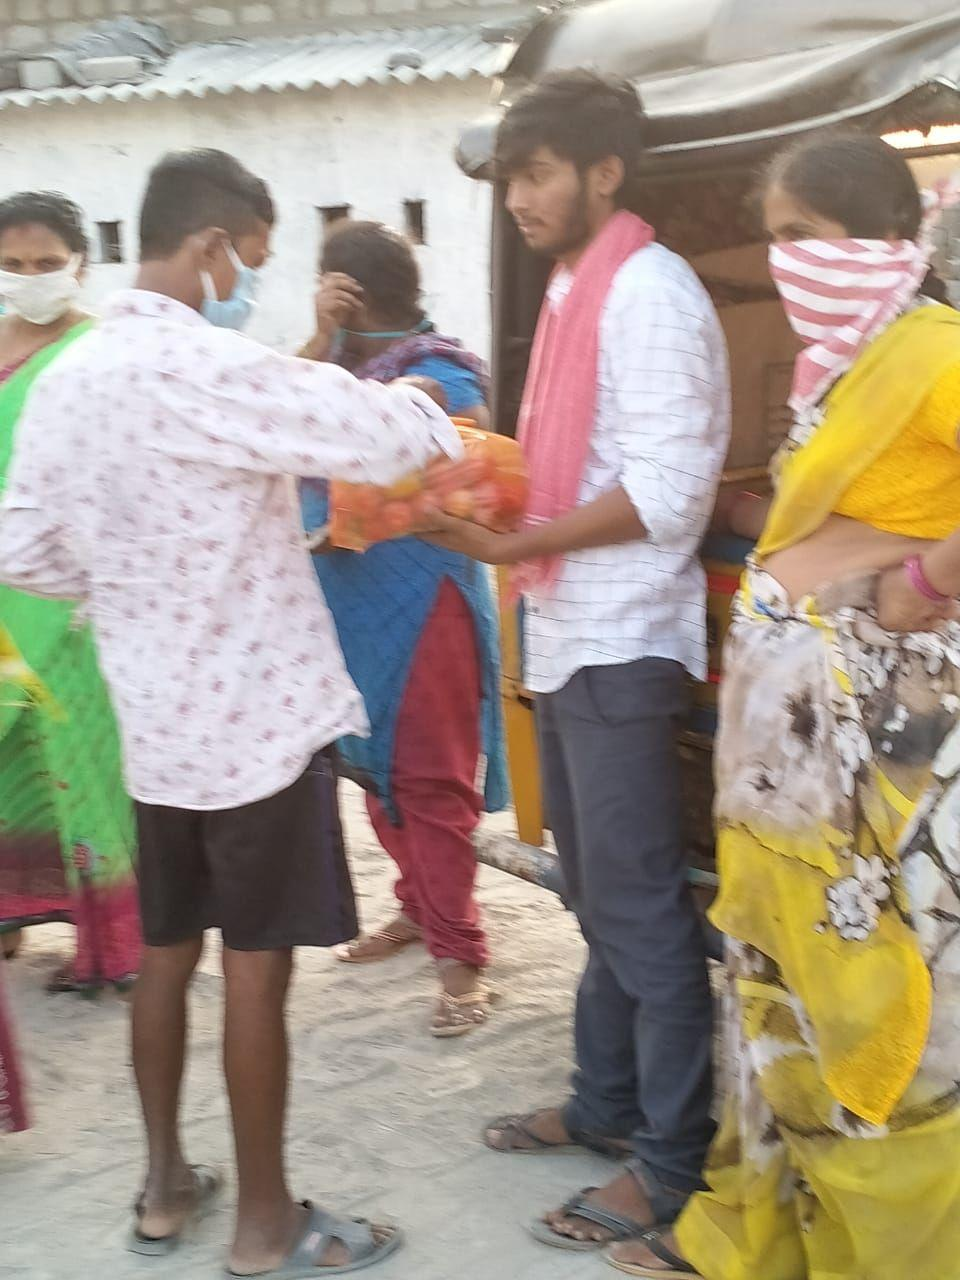 kanchikacharla villagers distributed groceries to migrant workers